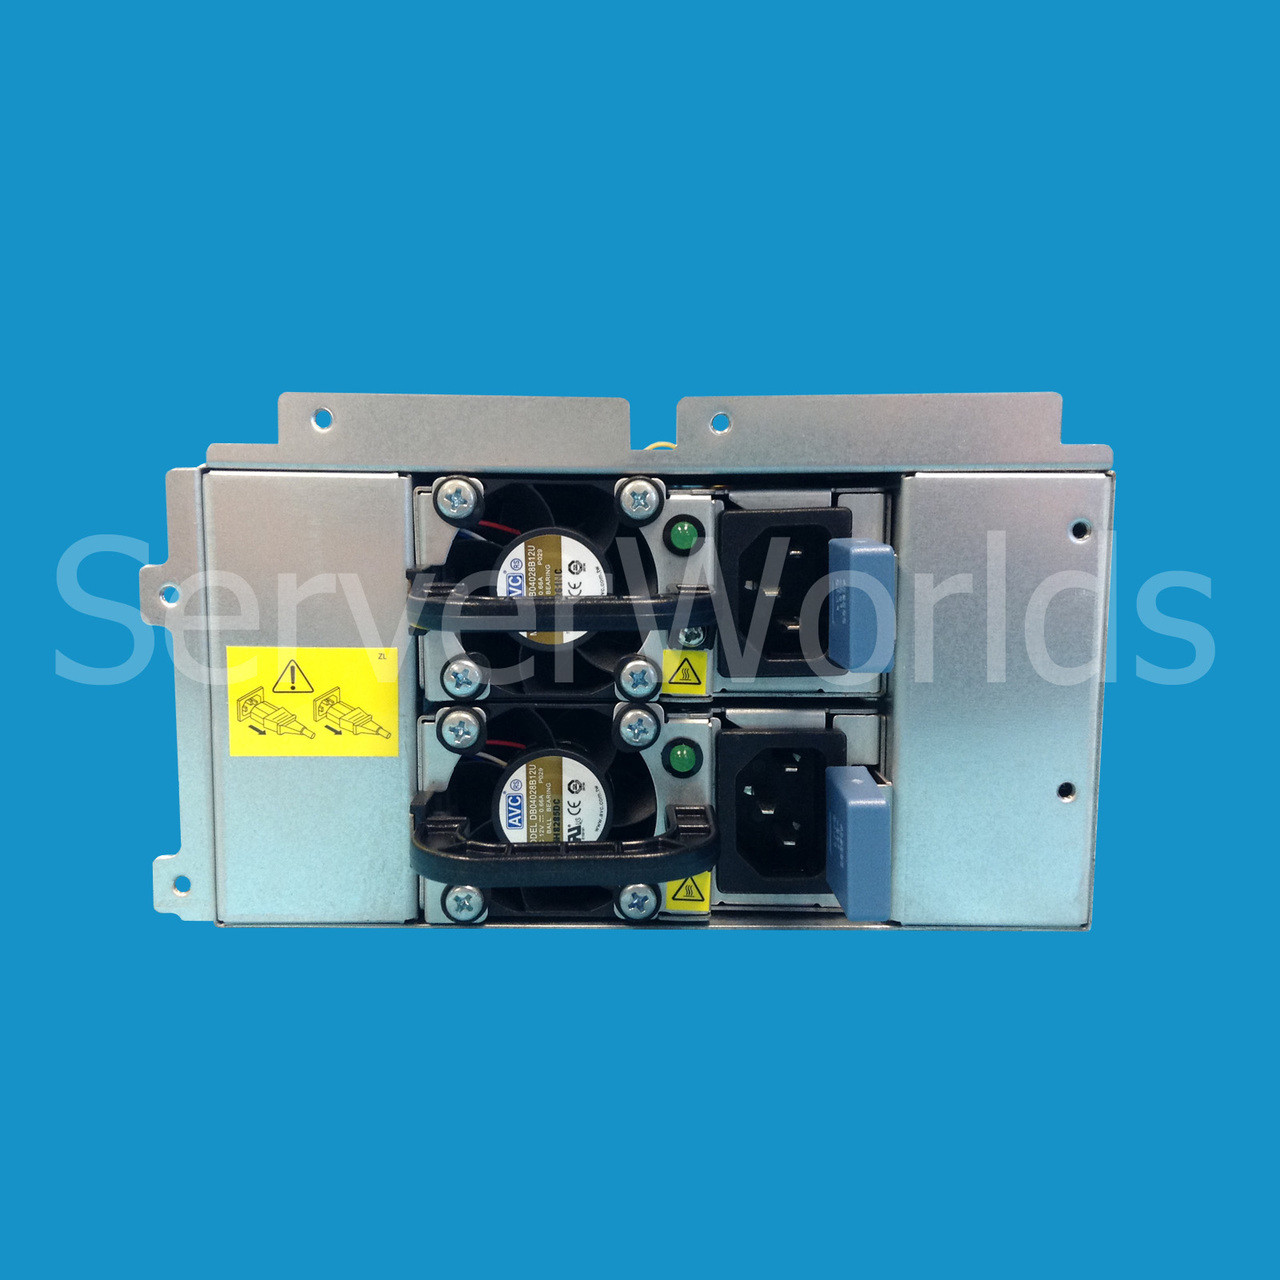 HP POWER SUPPLY 650W FOR ML150 G5